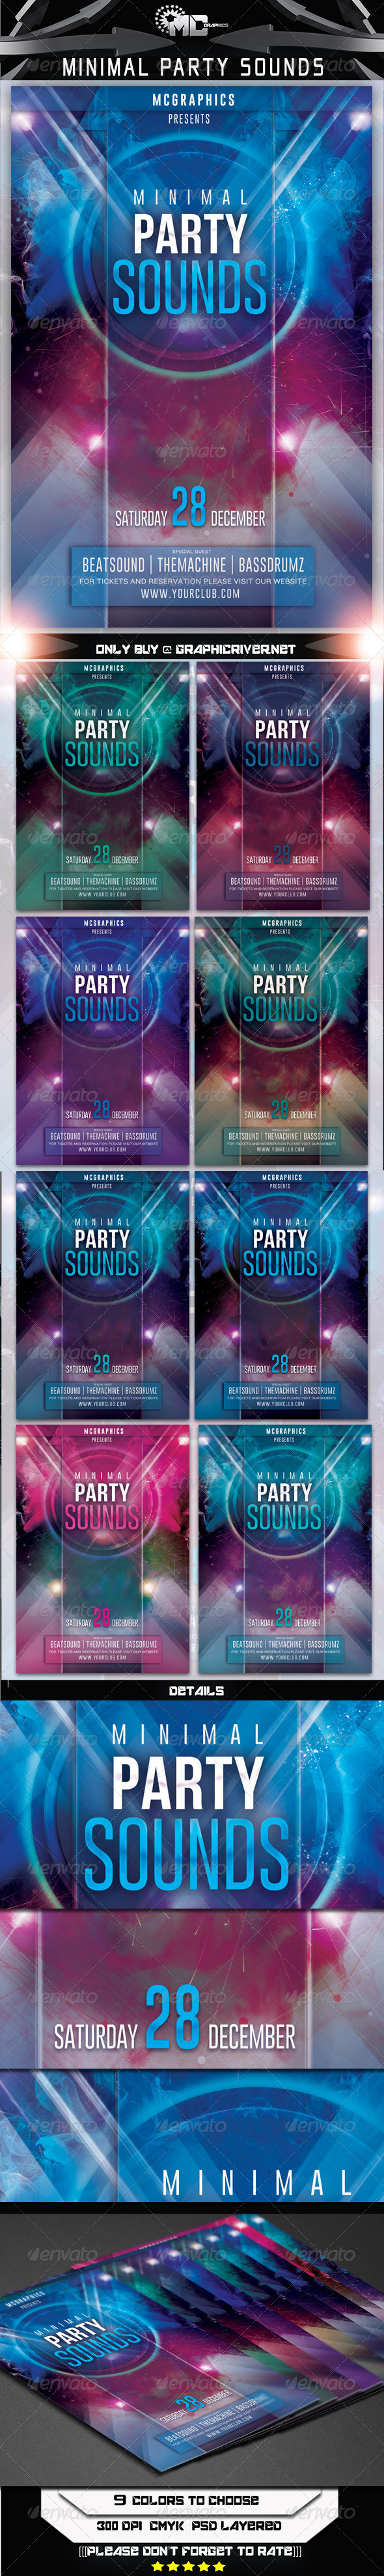 Minimal Party Sounds Flyer Template - Flyers Print Templates